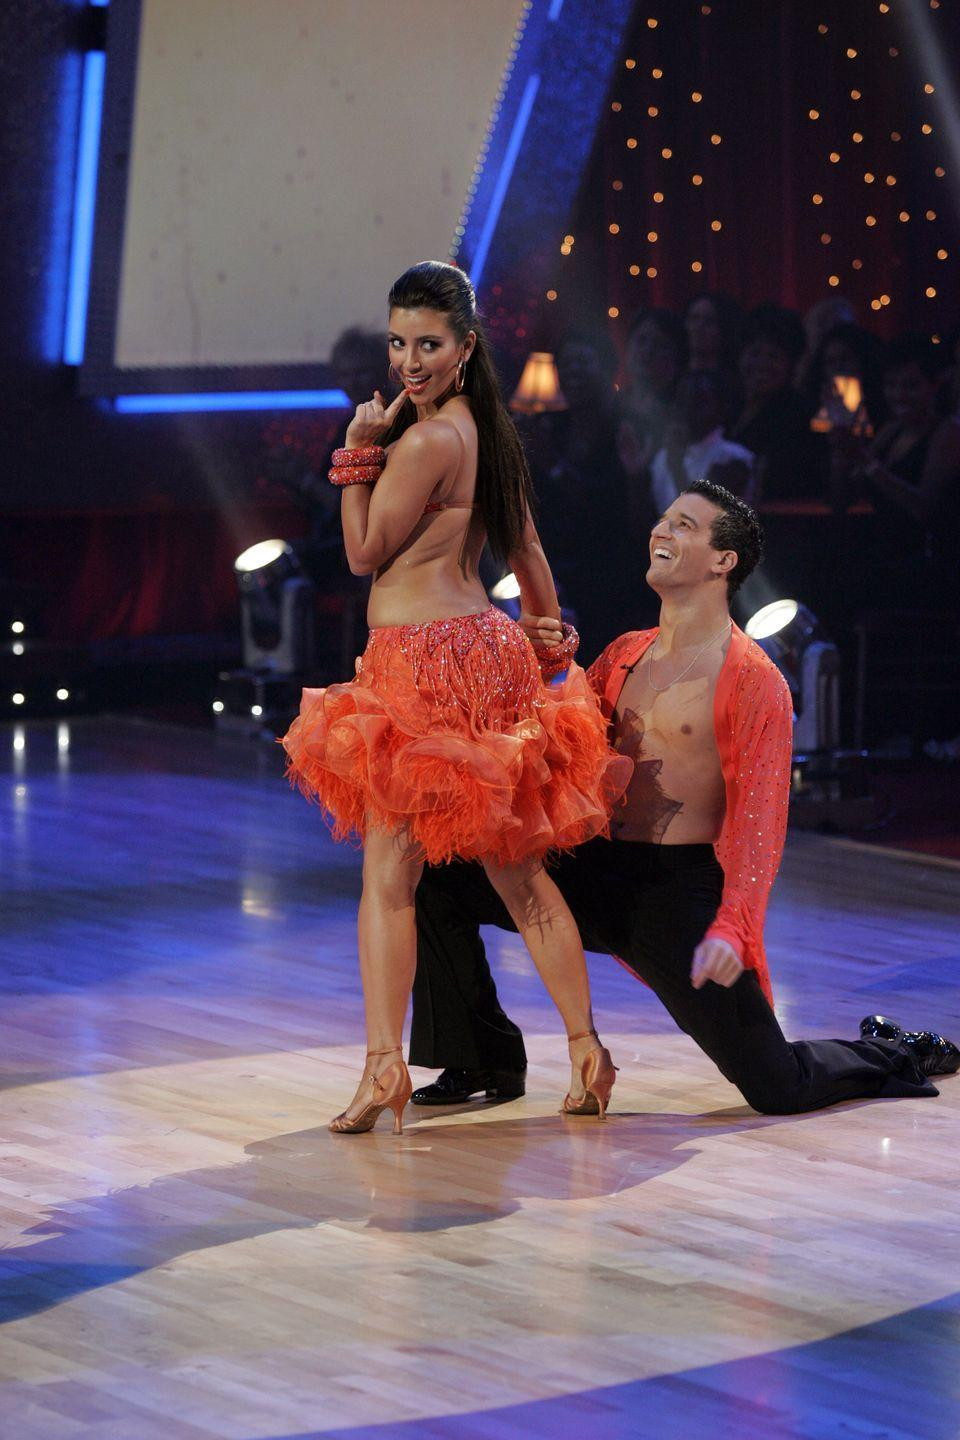 """<p>Despite having poor chemistry with her partner and a lack of confidence in dancing, Kim's most famous asset had a starring role in her mambo in season 7. In rehearsals, pro dancer Mark Ballas tried to show the reality star how to move her hips and rear, but to no avail. The most awkward part? The judges seemed amazed that the bombshell couldn't bring it on the dance floor with Tristan exclaiming, """"Why you have what you've got and don't use it really frustrates me.""""</p>"""